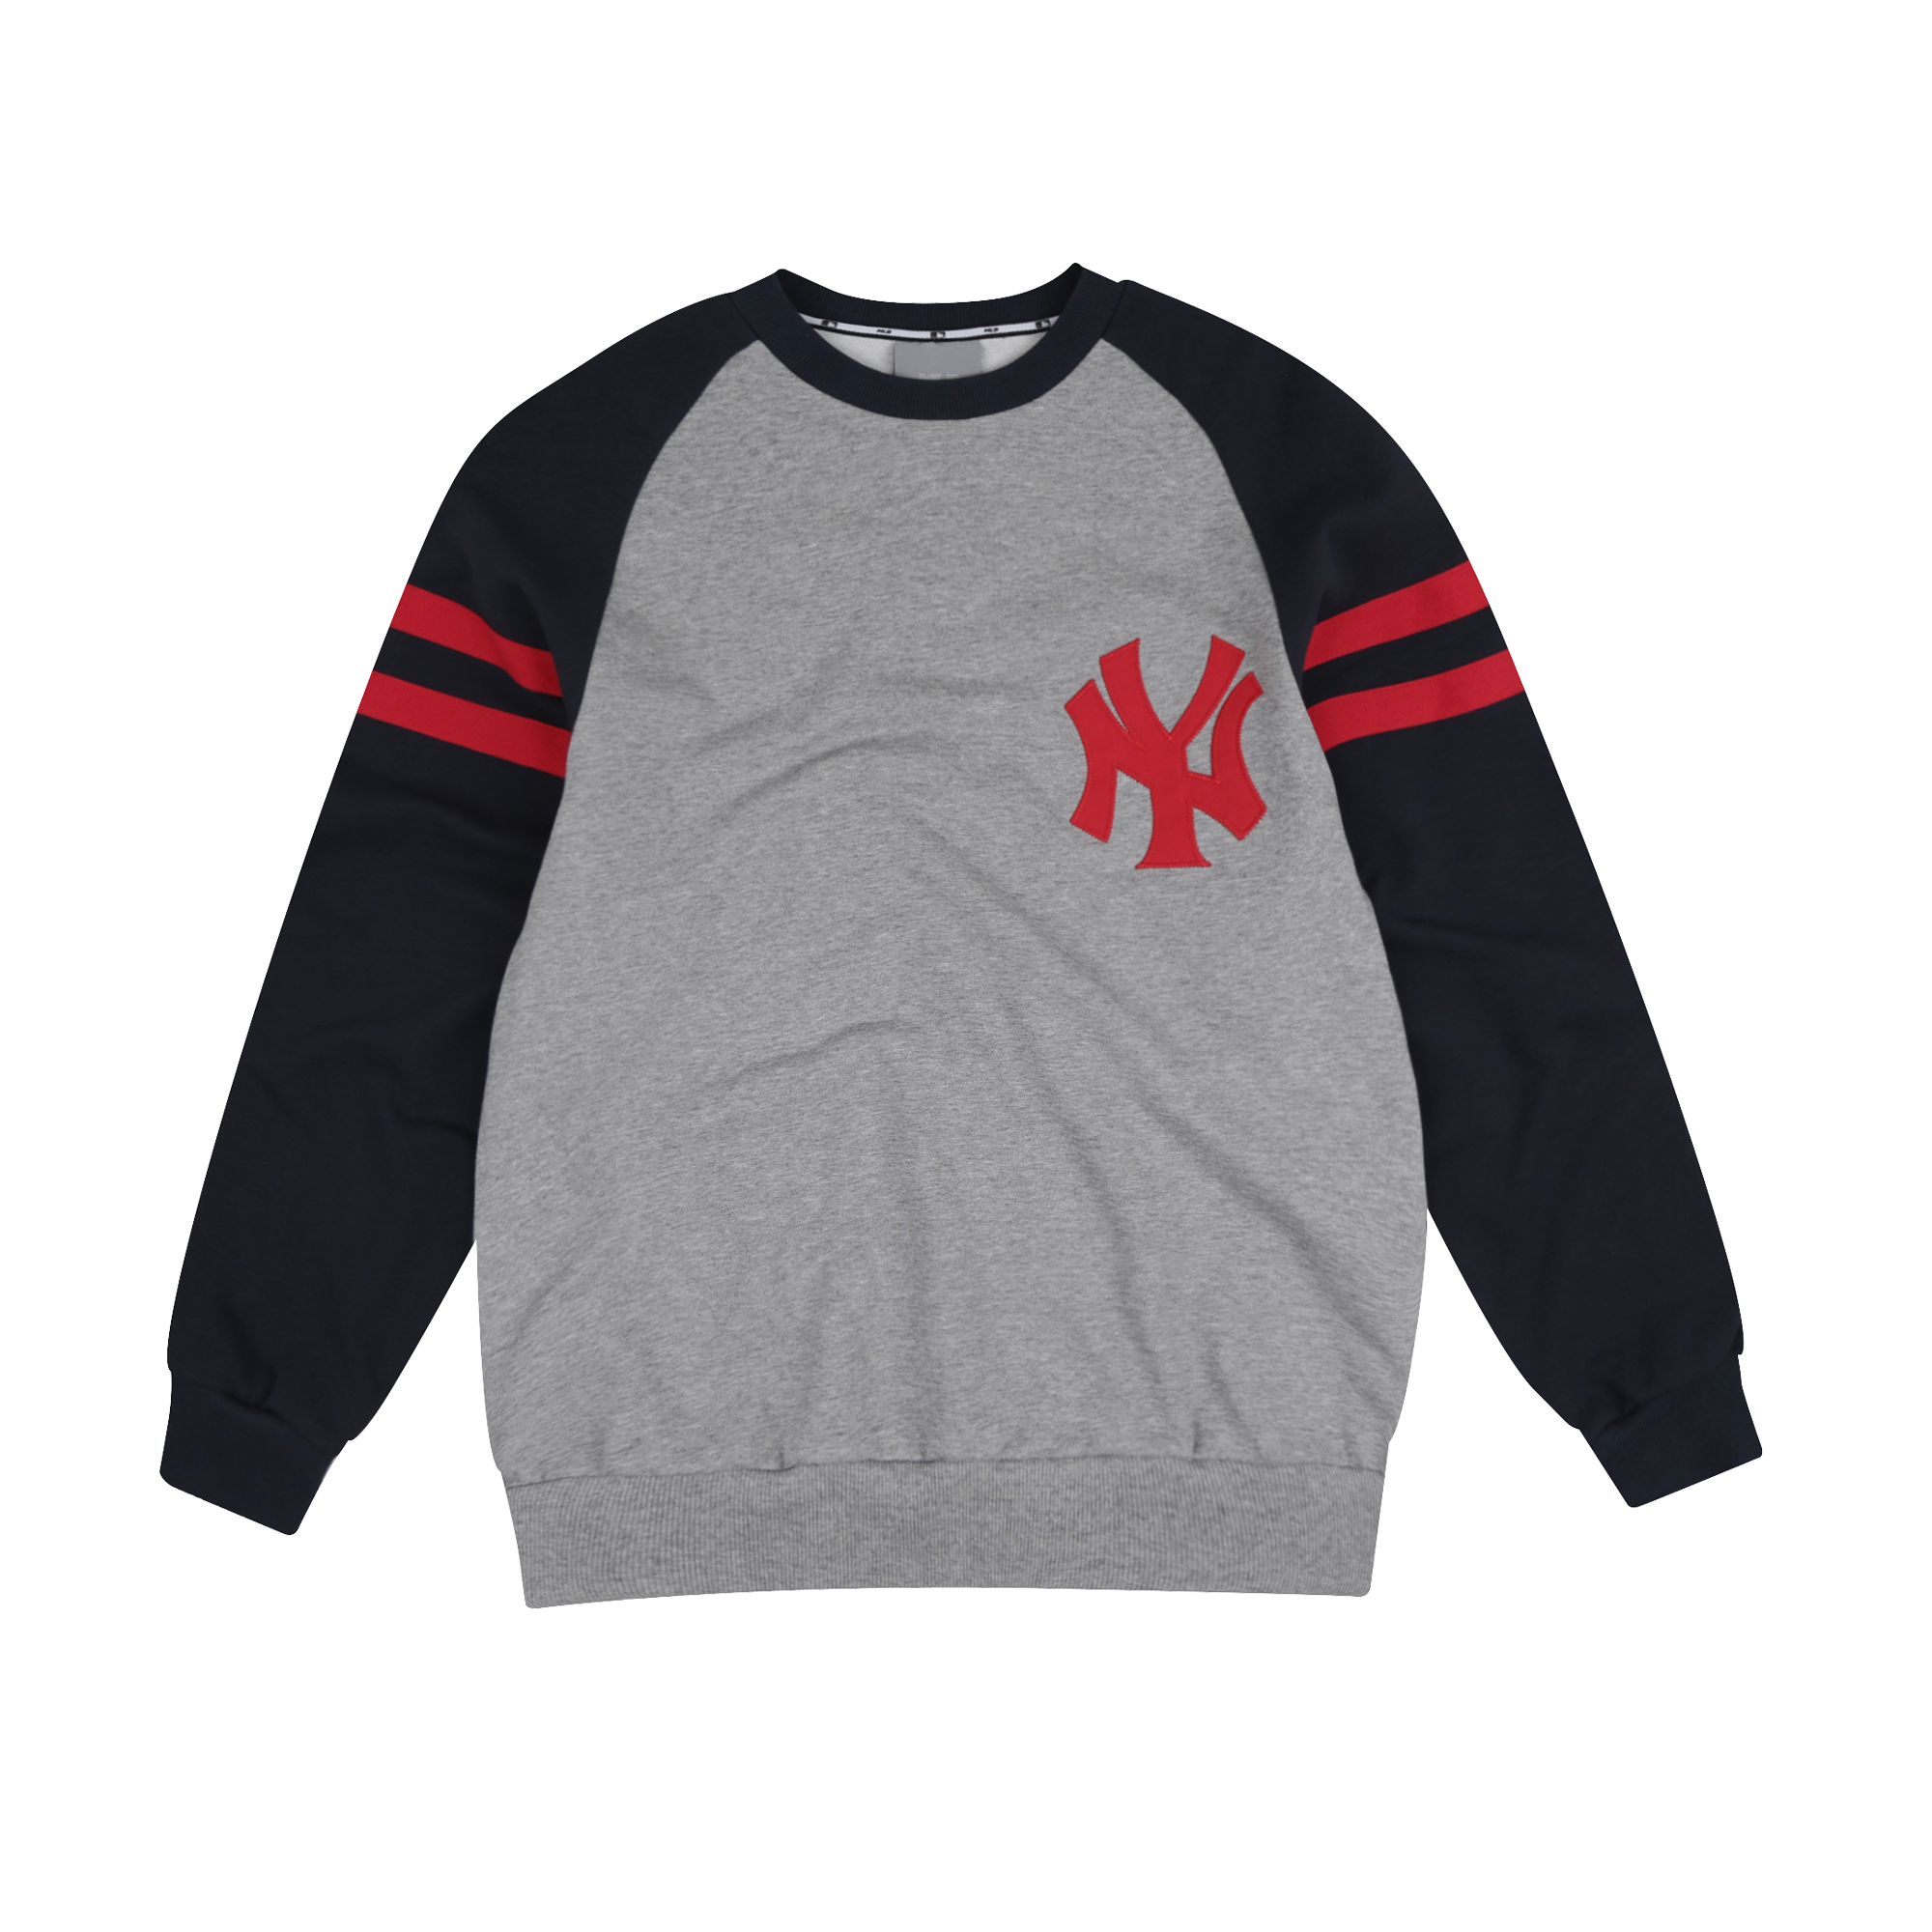 NEW YORK YANKEES SLEEVE BICOLOR SIGNATURE LOGO SWEATSHIRT